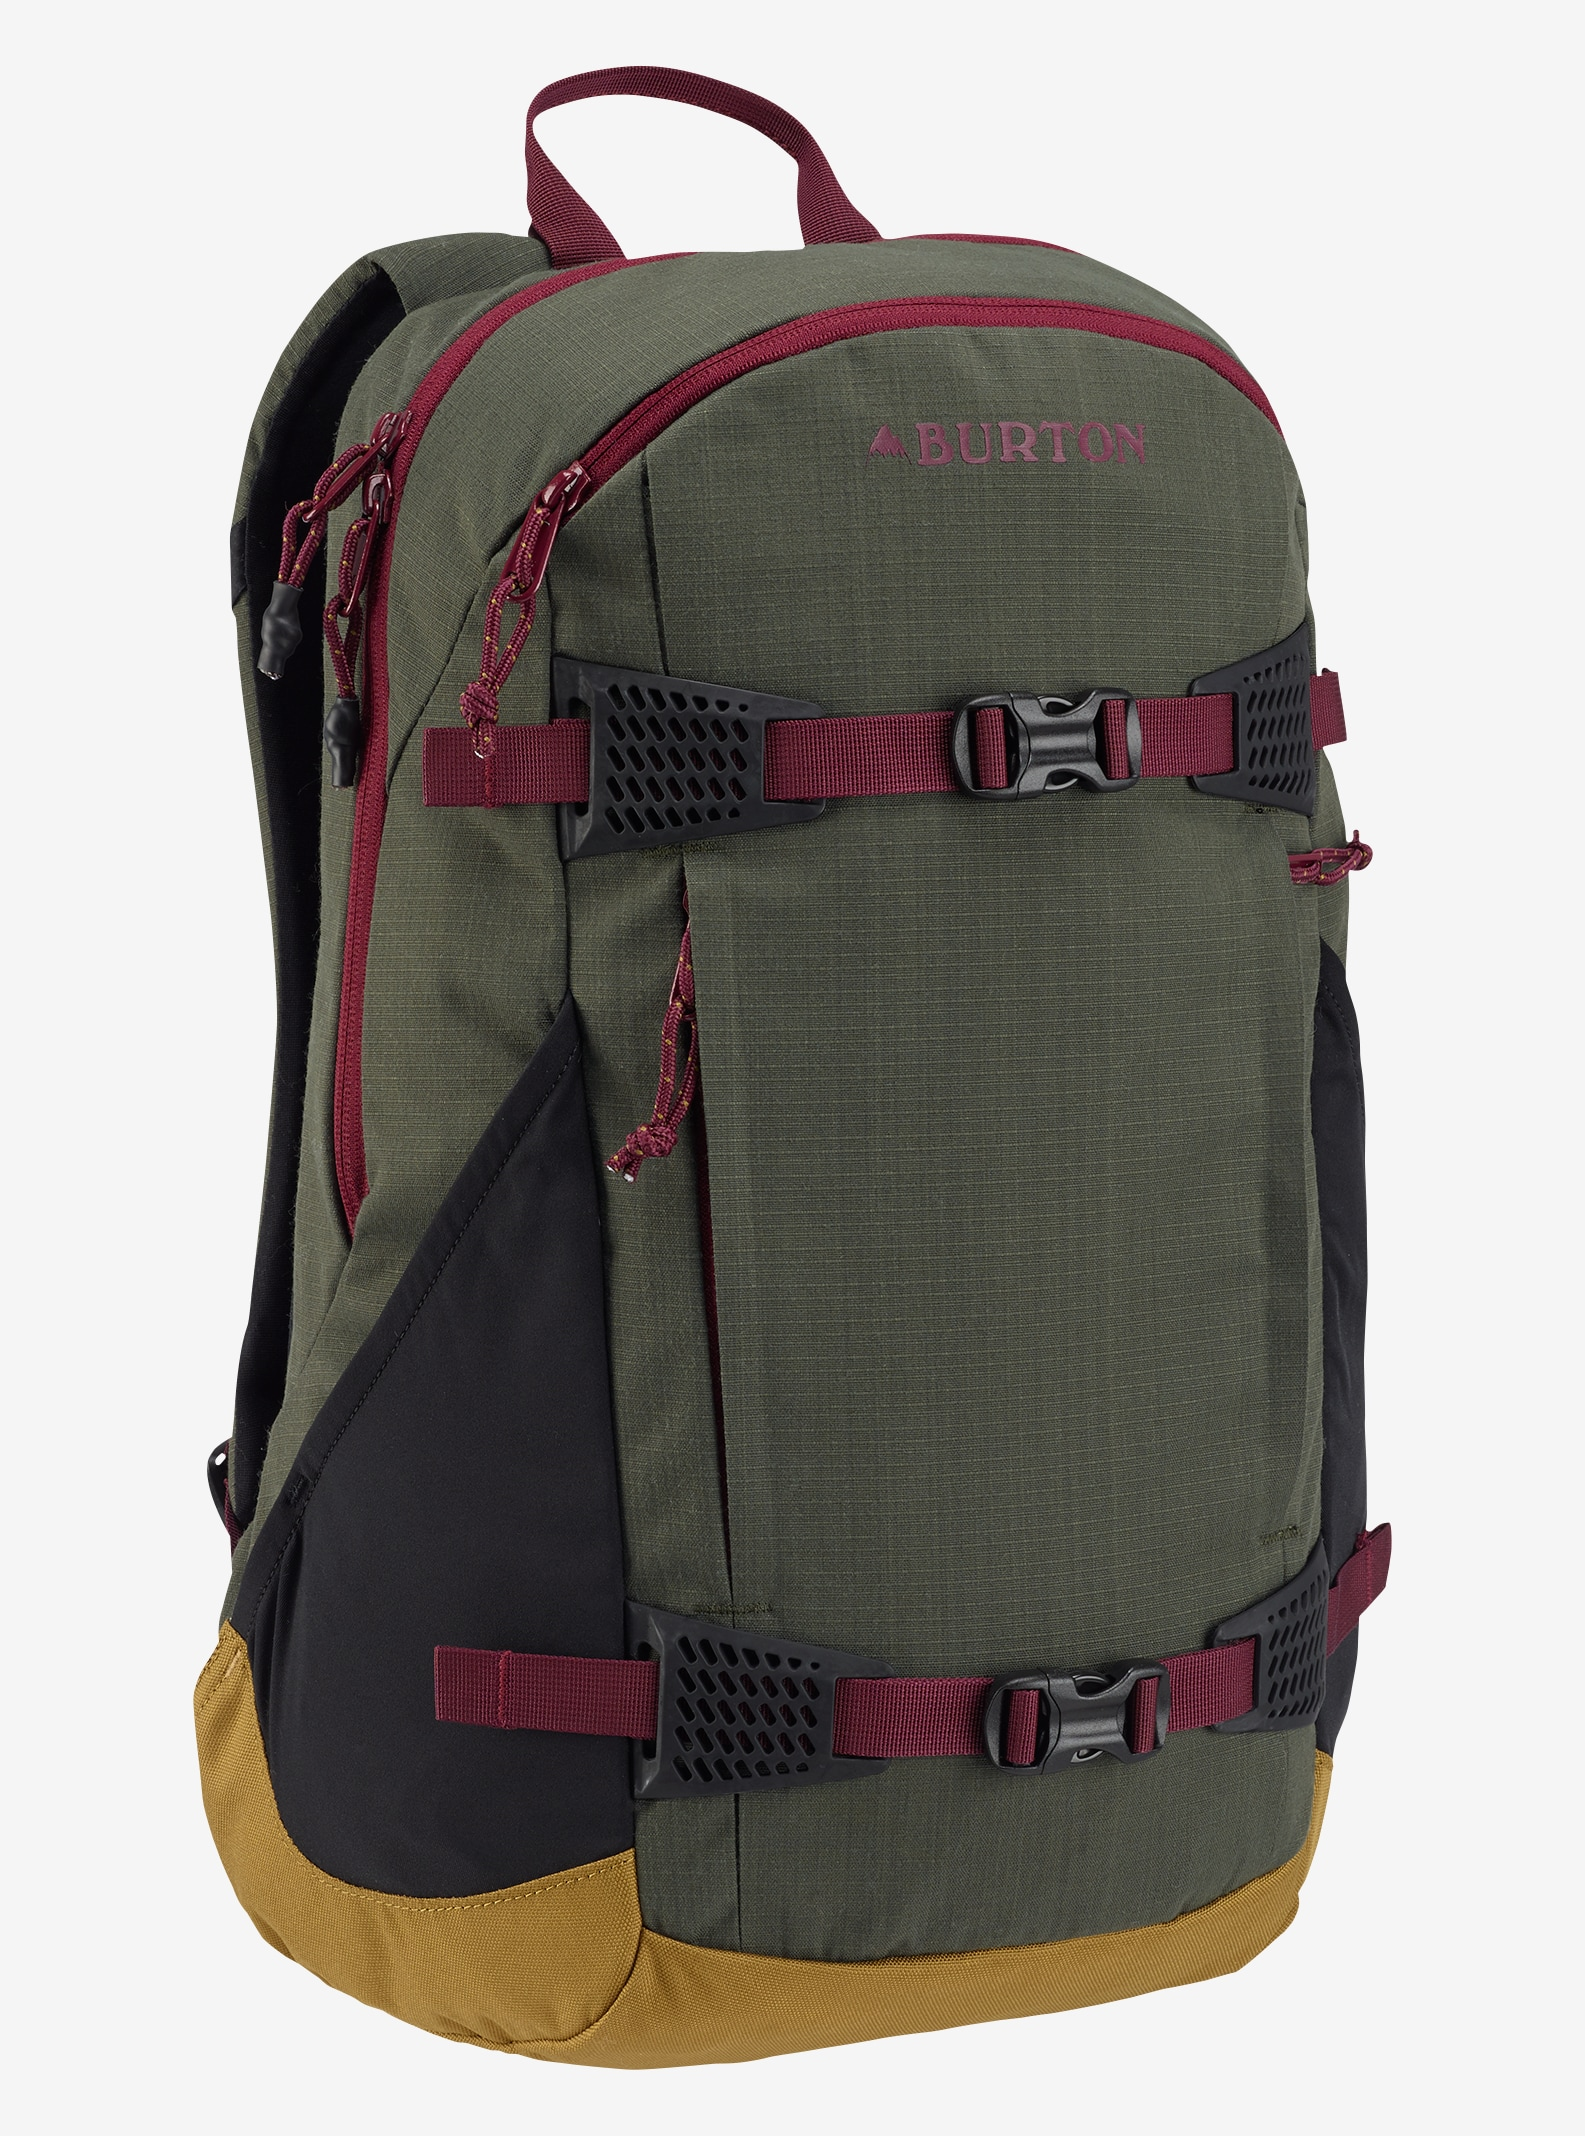 Burton Women's Day Hiker 25L Backpack shown in Forest Night Ripstop